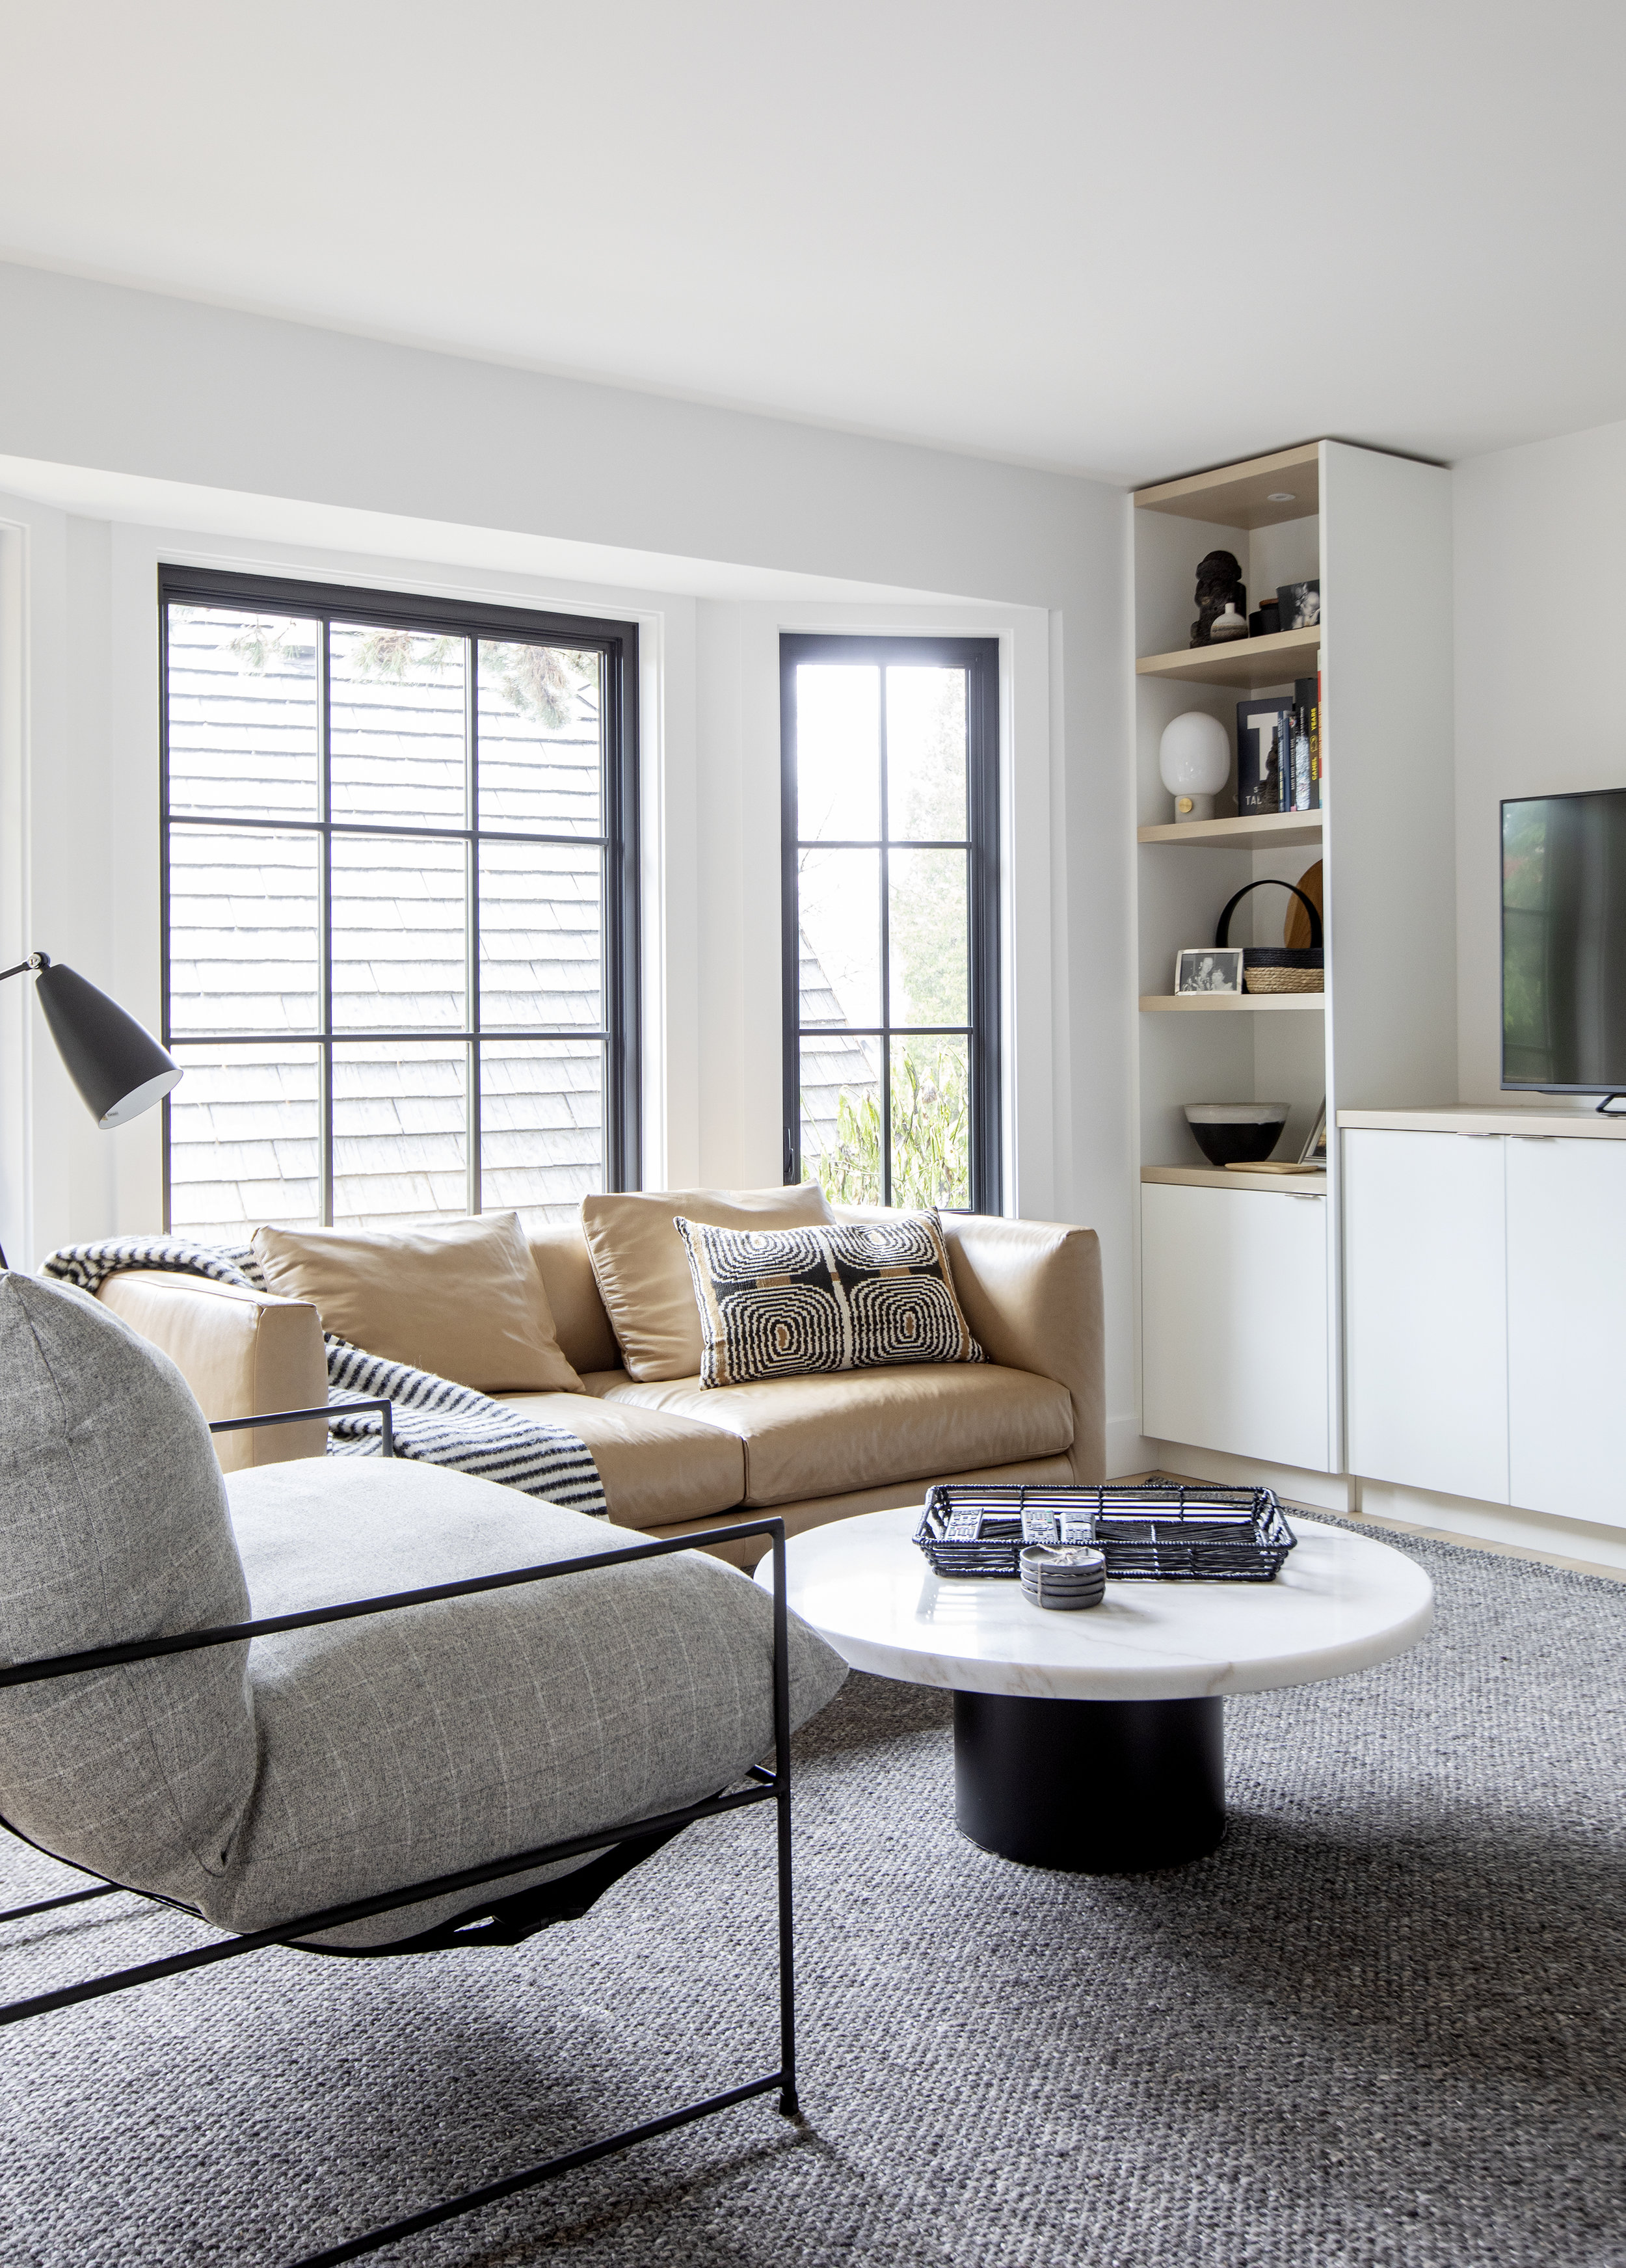 The modern den in Alderfield Place features a comfy, yet modern looking armchair, and a tan loveseat. The room is pulled together with a large area rug.